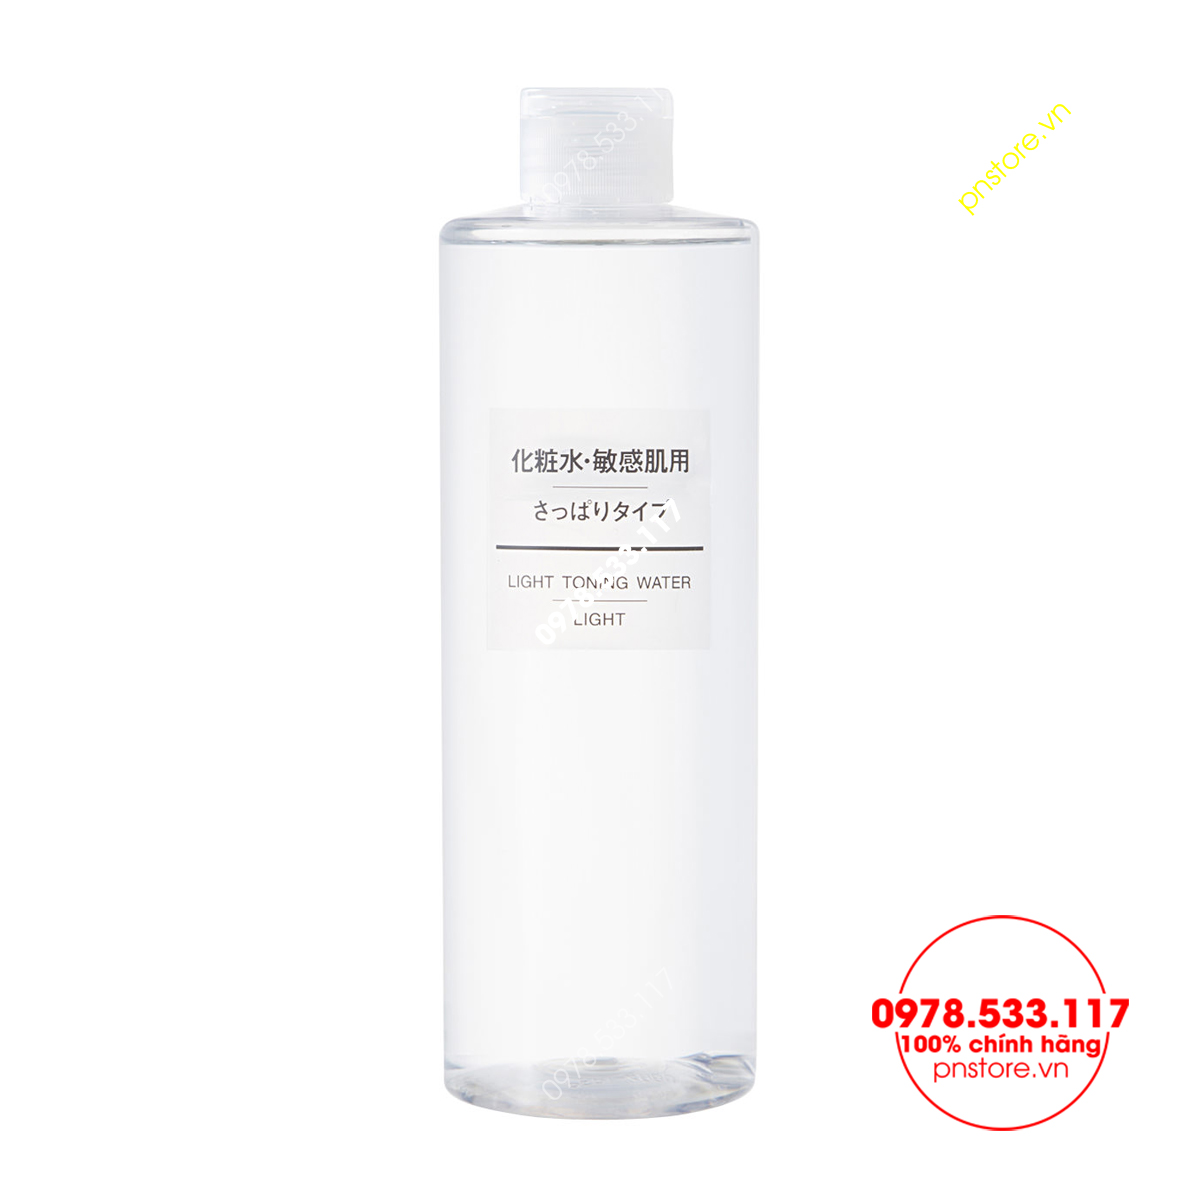 nuoc-hoa-hong-muji-light-toning-water-light-200ml-chinh-hang-nhat-ban